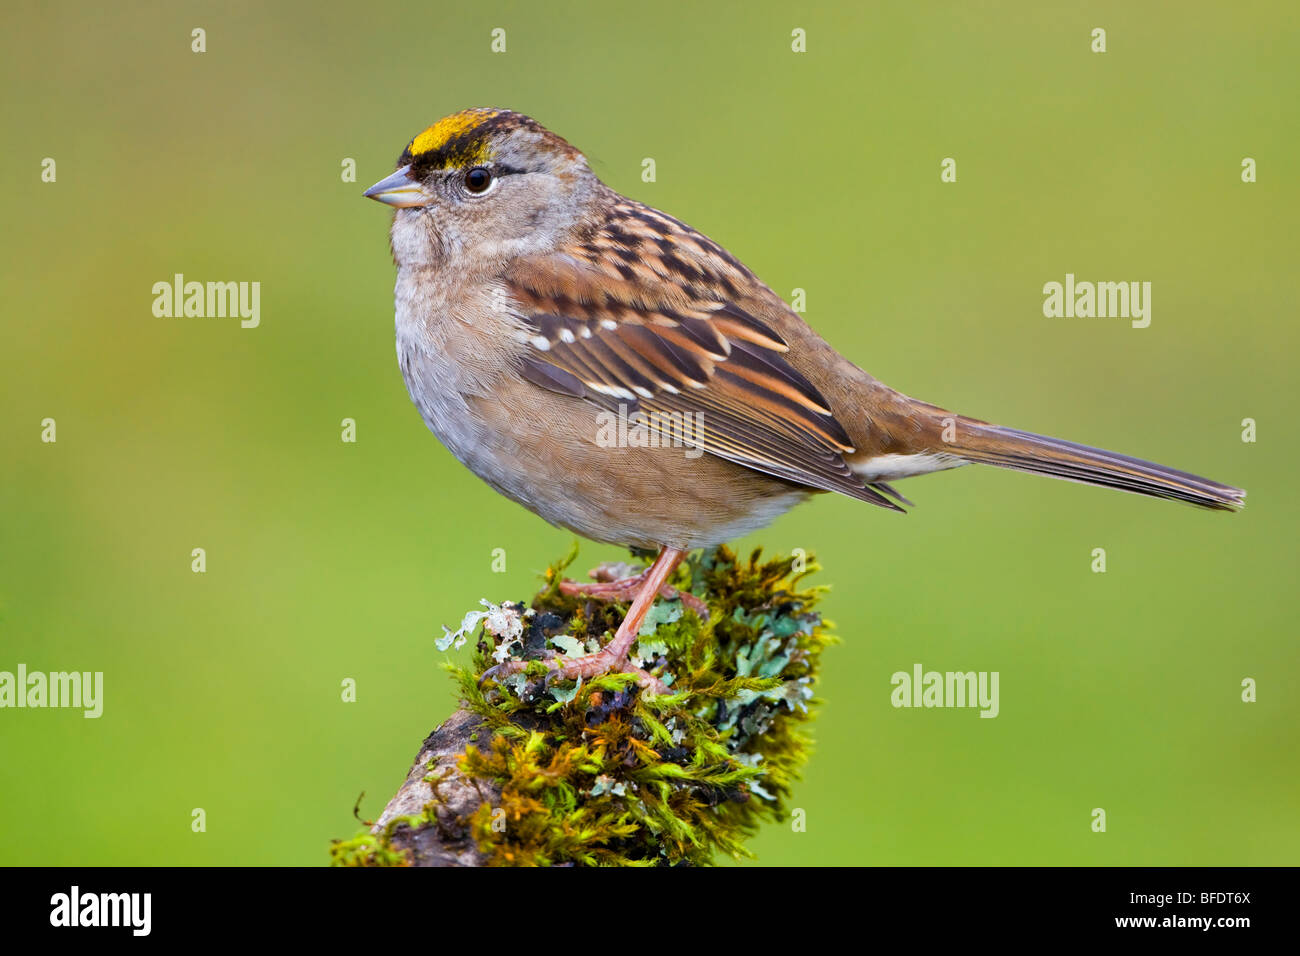 Golden-crowned Sparrow (Zonotrichia atricapilla) perched on mossy branch in Victoria, Vancouver Island, British - Stock Image